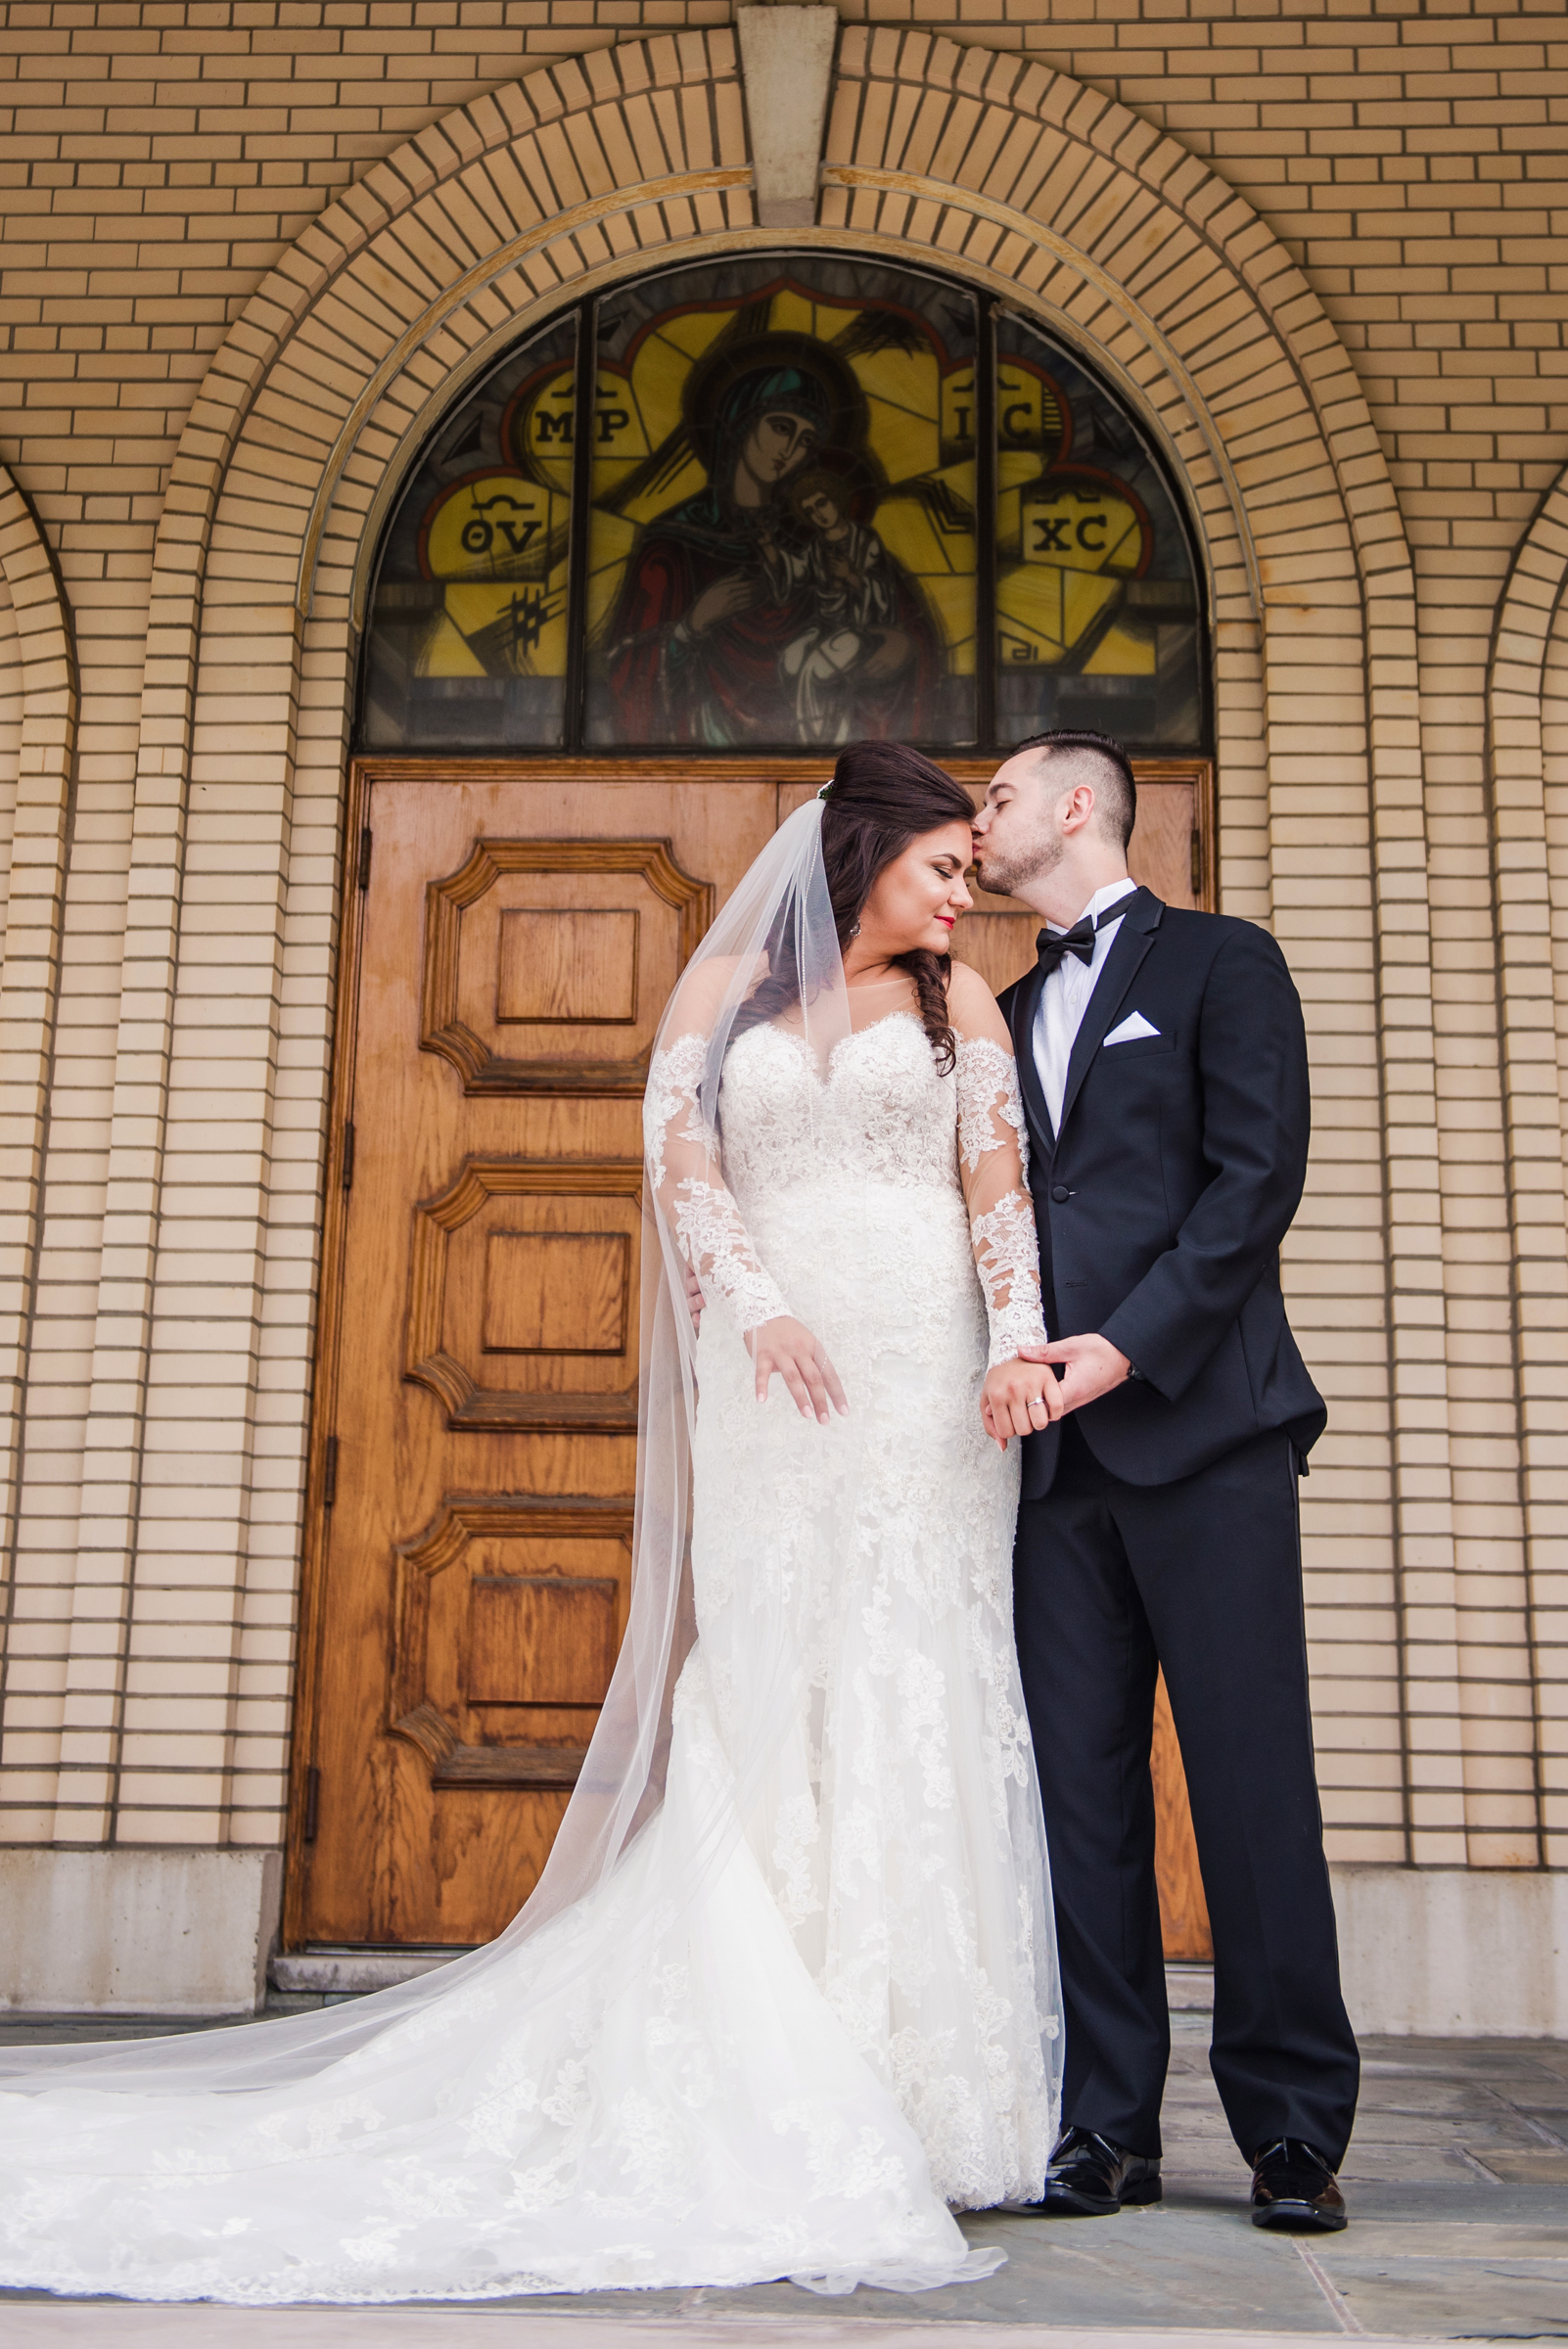 JILL_STUDIO_Wedding_JILL_STUDIO_Rochester_NY_Photographer_21-DSC_2233.jpg